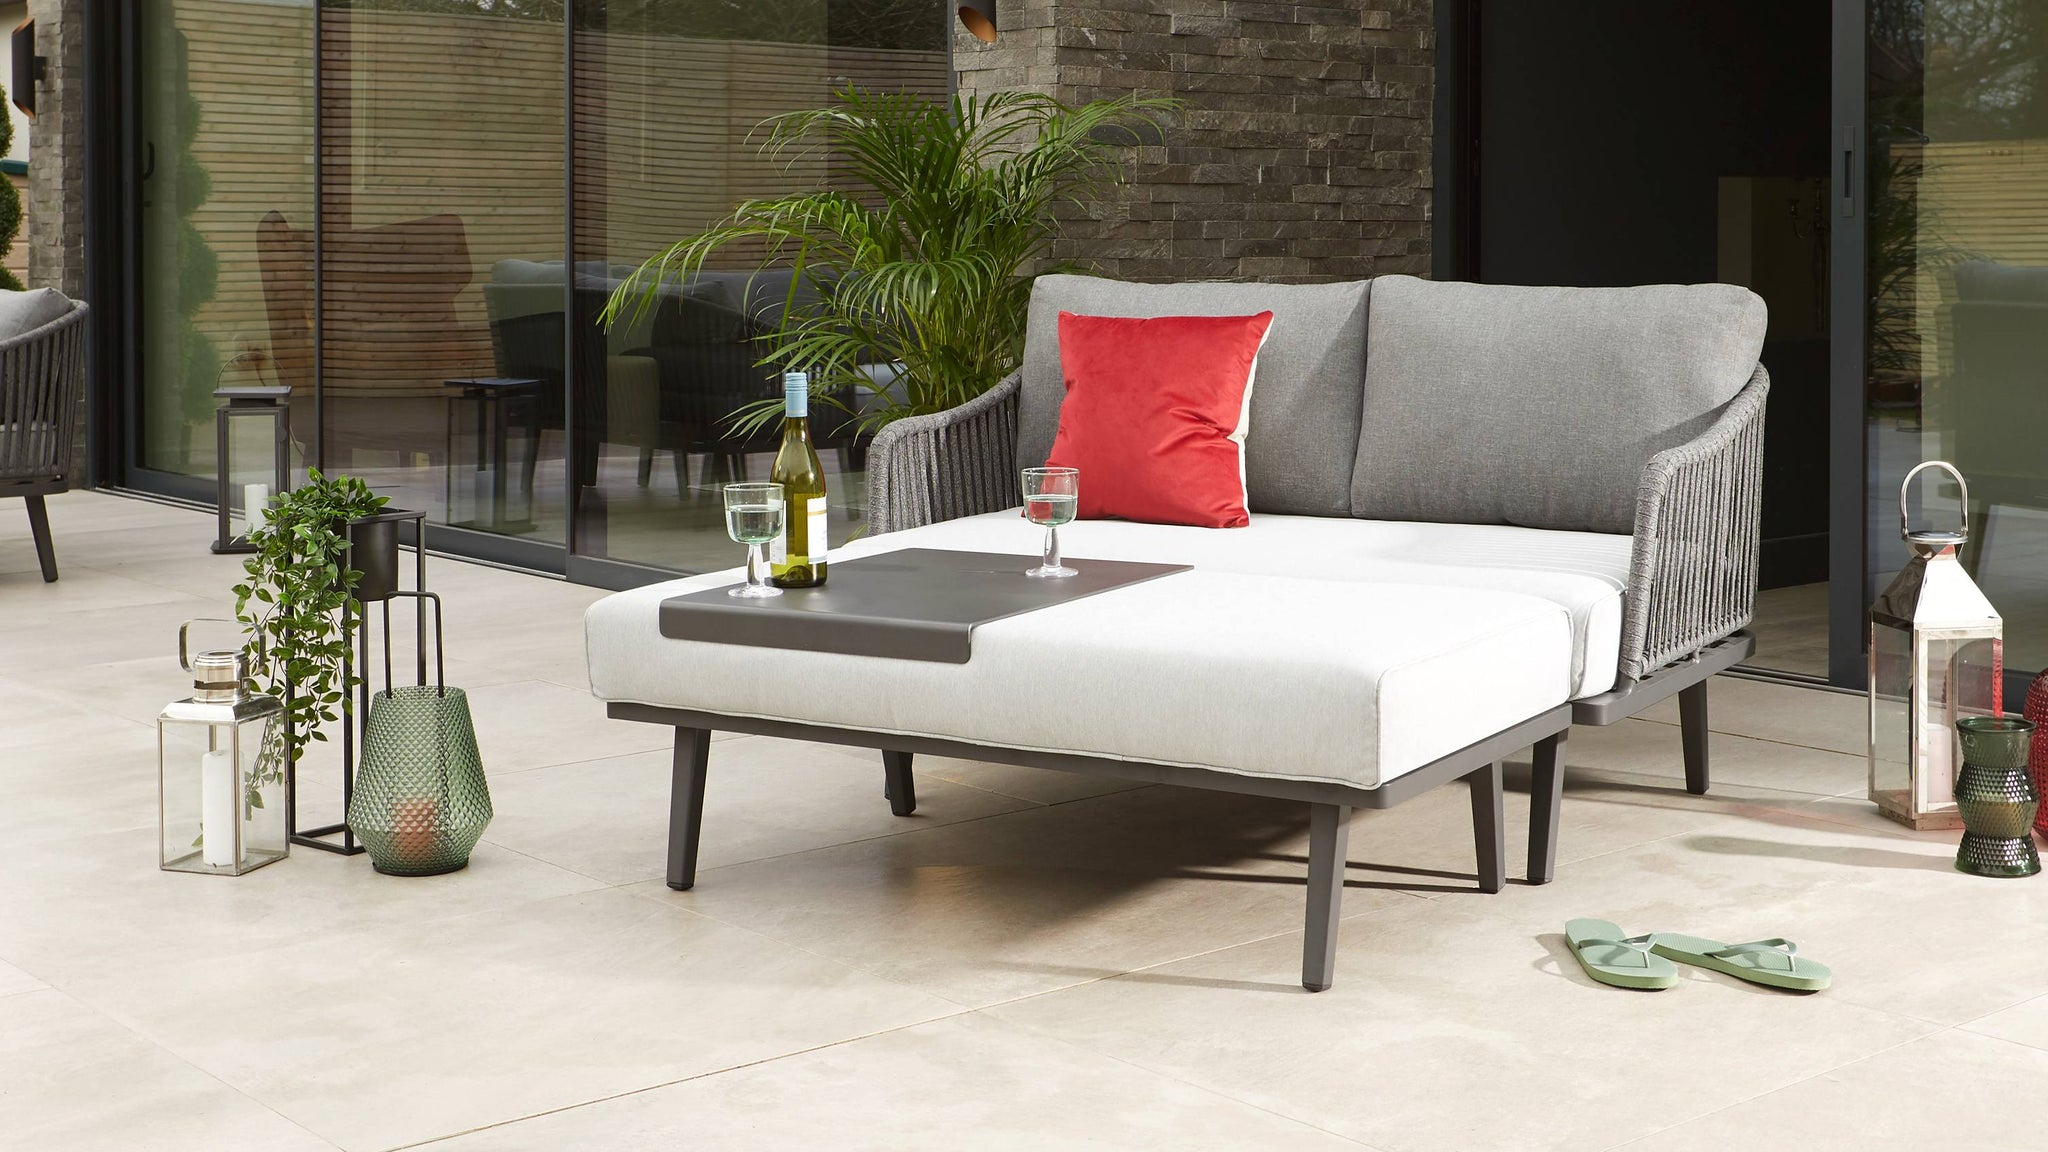 Modern garden furniture tray